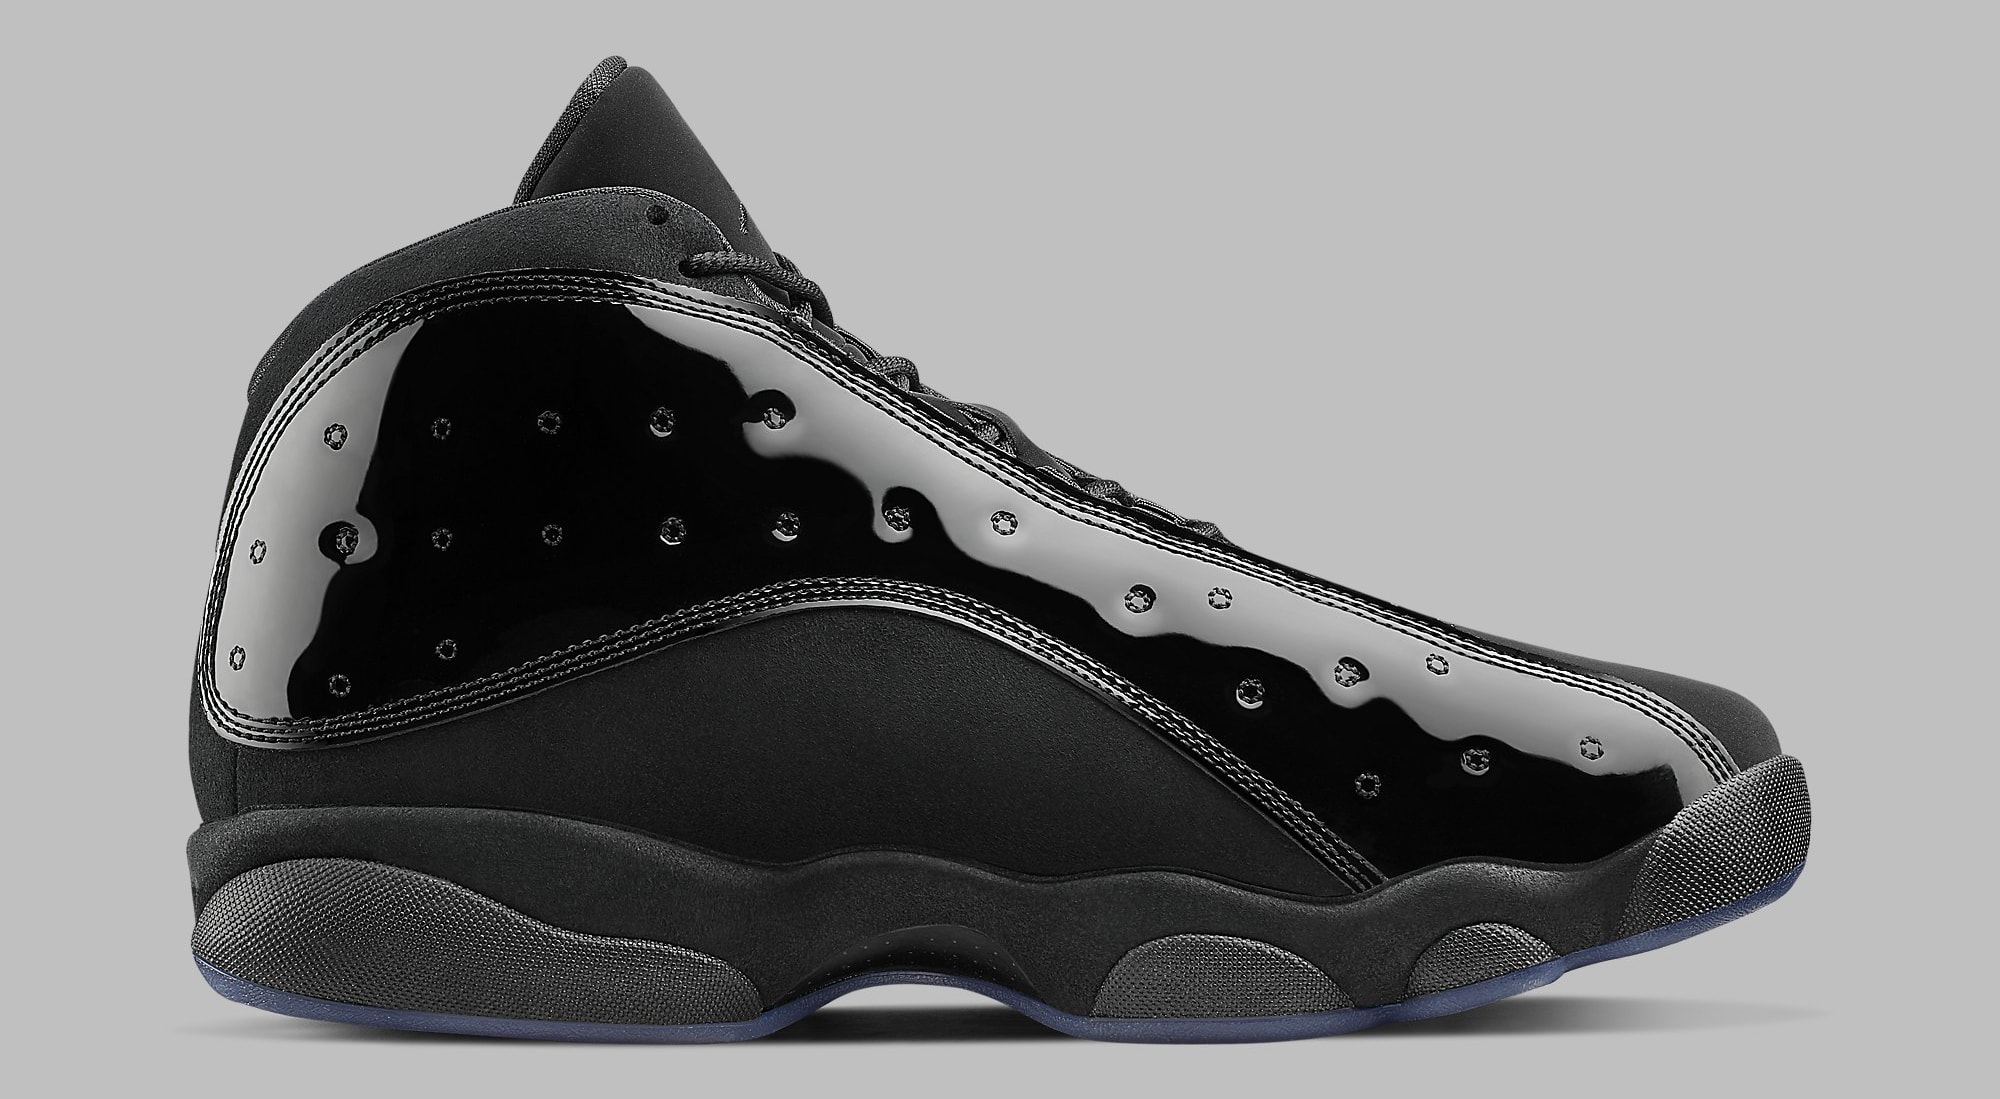 Air Jordan 13 Retro 'Cap and Gown' 414571-012 Medial